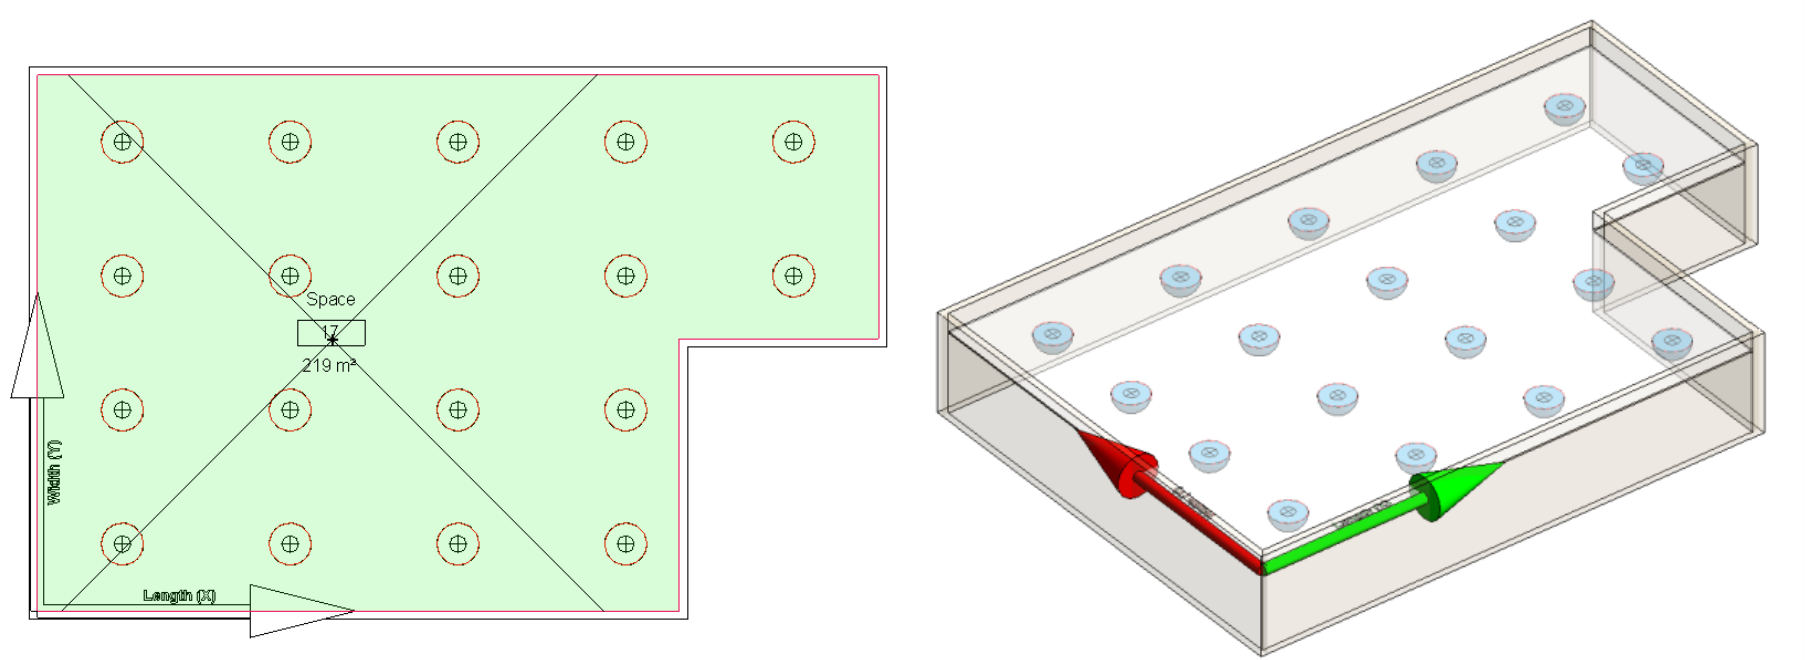 Fire Sprinkler System Design in Revit® MEP | Smart